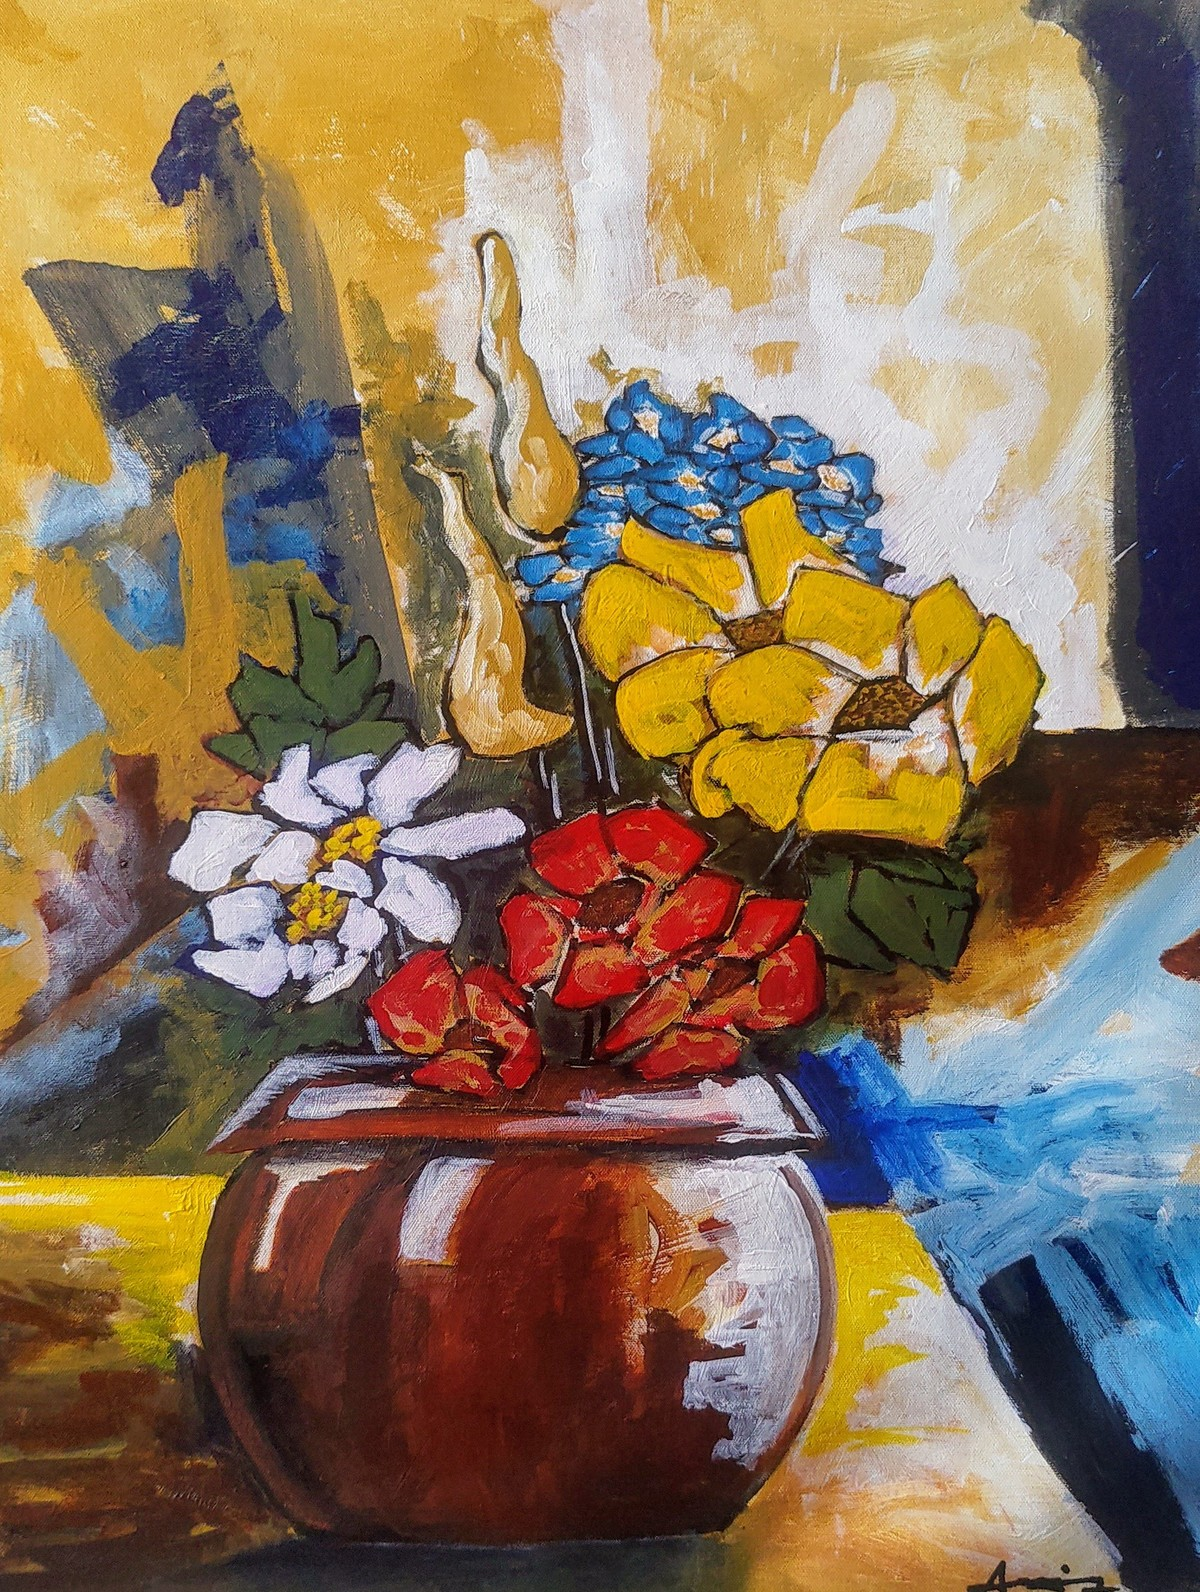 Still life with flowers by DEB SANJOY DUTTA, Expressionism Painting, Acrylic on Canvas, Tuna color